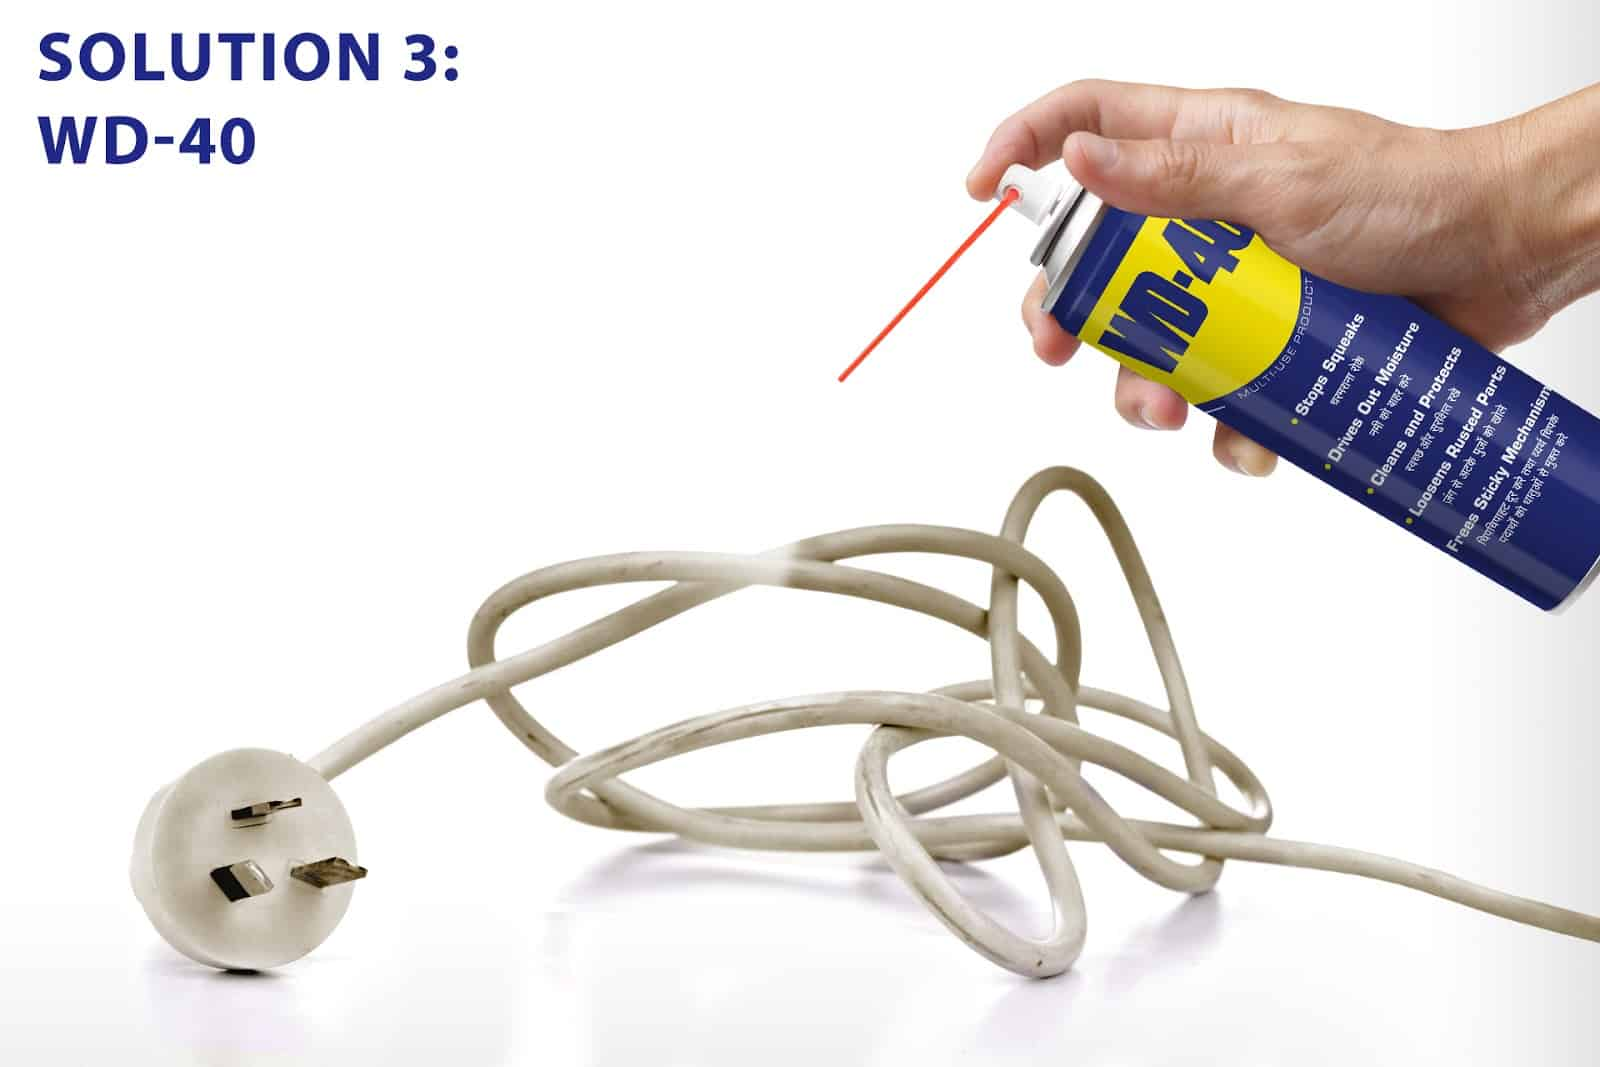 wd40 to clean power cords